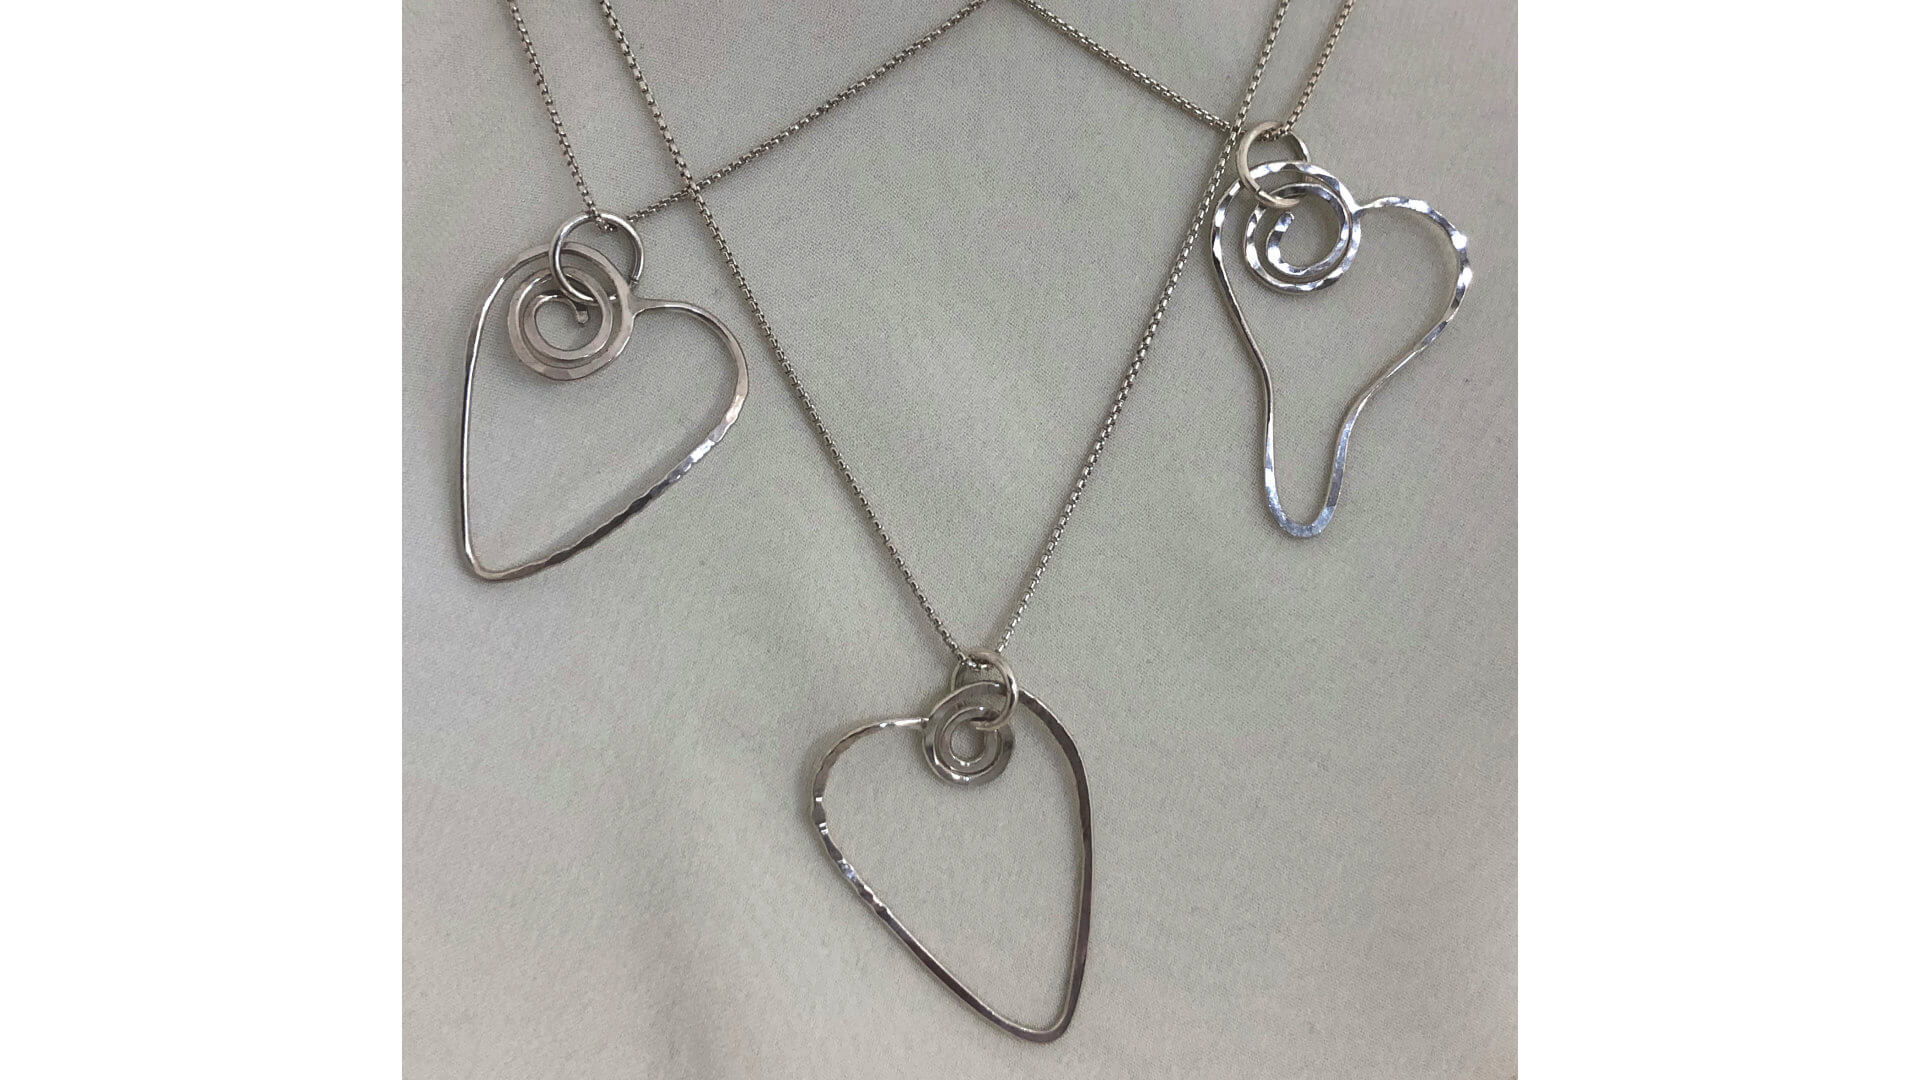 Swirling Heart Energy Pendants by Susan Hazer Designs